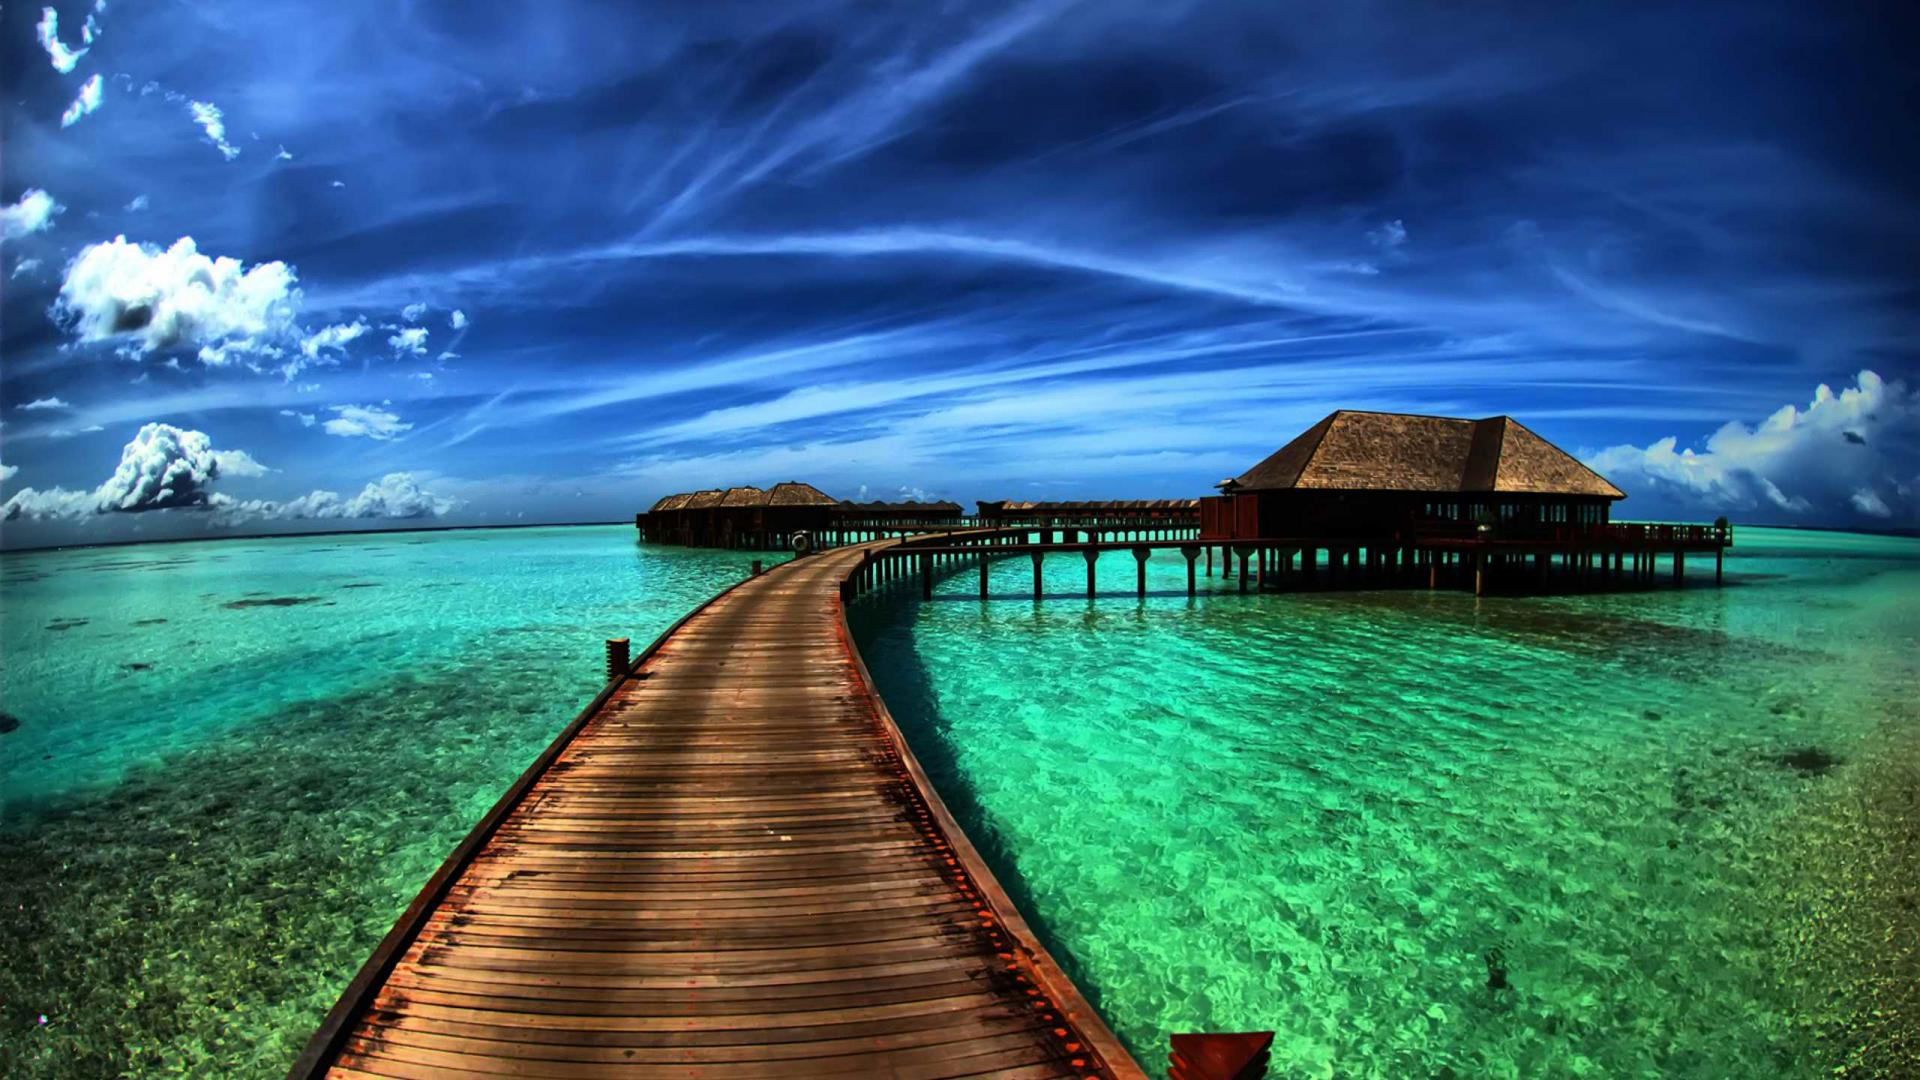 best beach background desktop wallpaper download best beach background 1920x1080